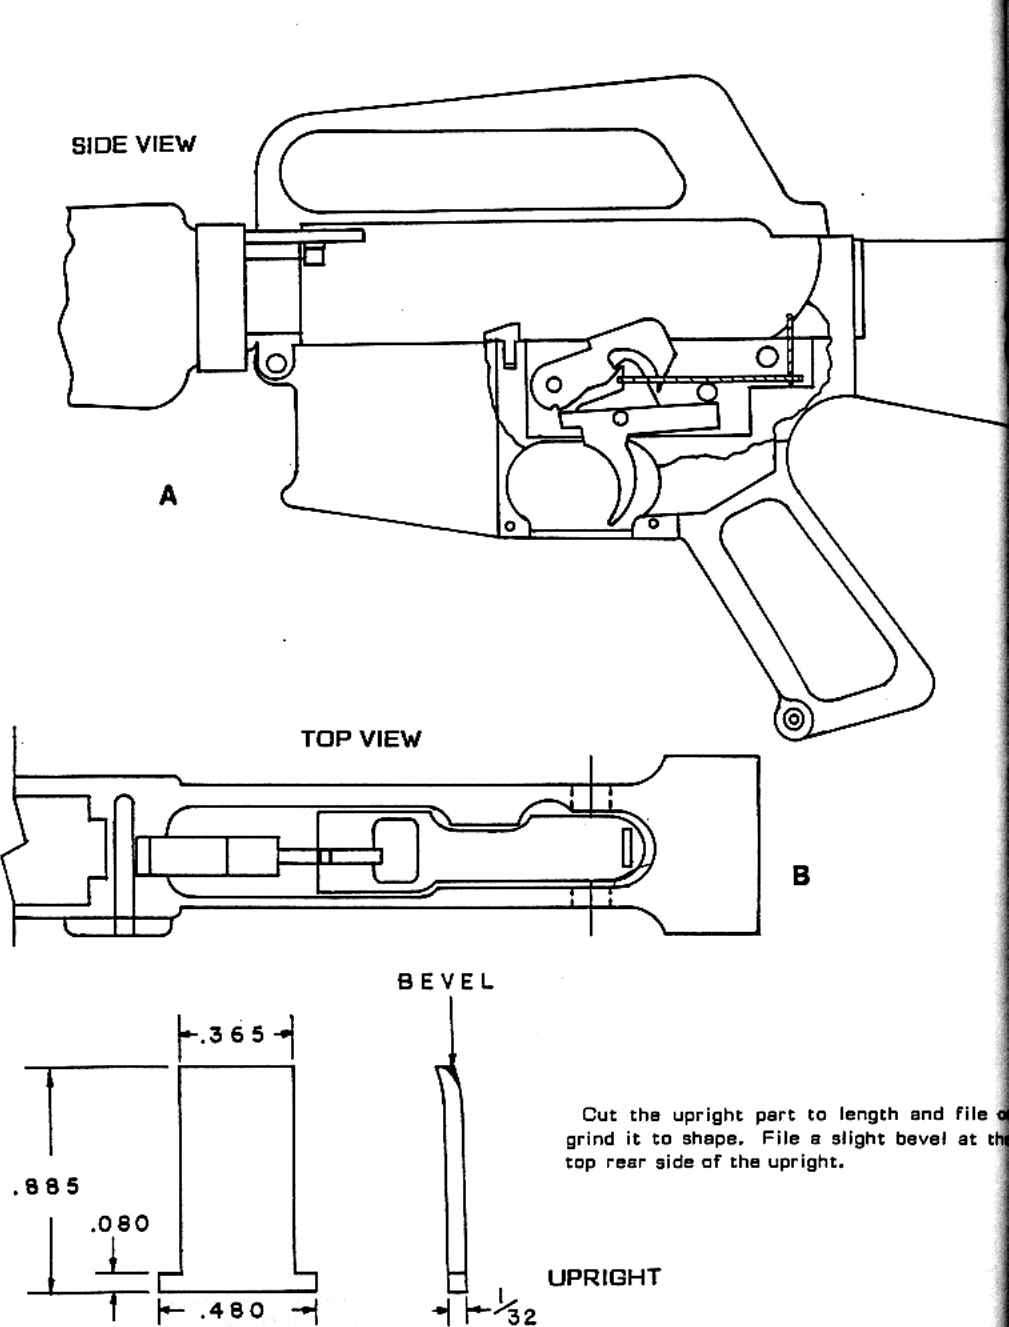 Building lightning ar15 to m16 conversion assemble the parts refer to drawing cl install the parts in the lower receiver see drawing a tip the weapon so the links upright rests against the pooptronica